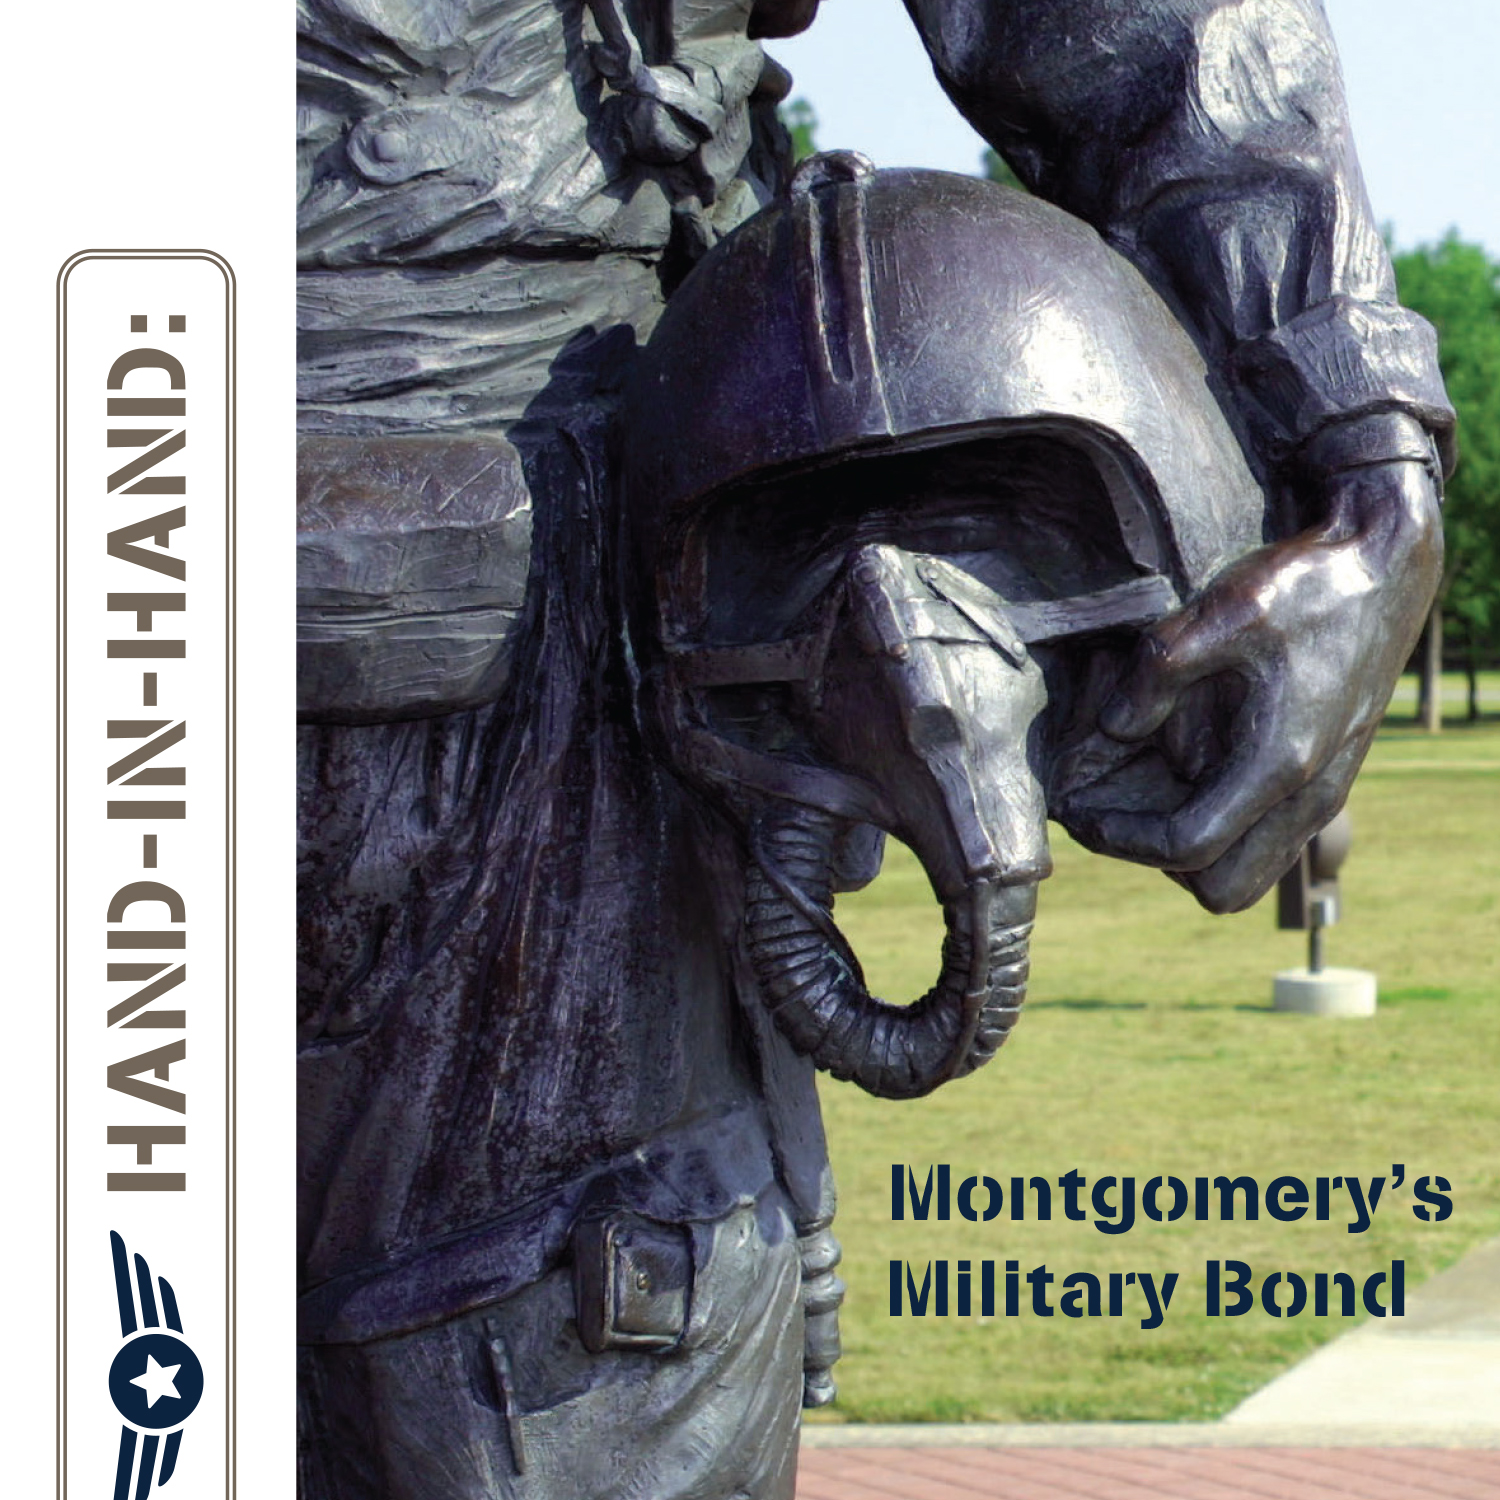 November 2020 MBJ, Montgomery Business Journal, Military, Maxwell-Gunter AFB, Air Force, City of Montgomery, Montgomery County, Military Bond, MGM, MBJ, Montgomery Area Chamber of Commerce, Montgomery Chamber